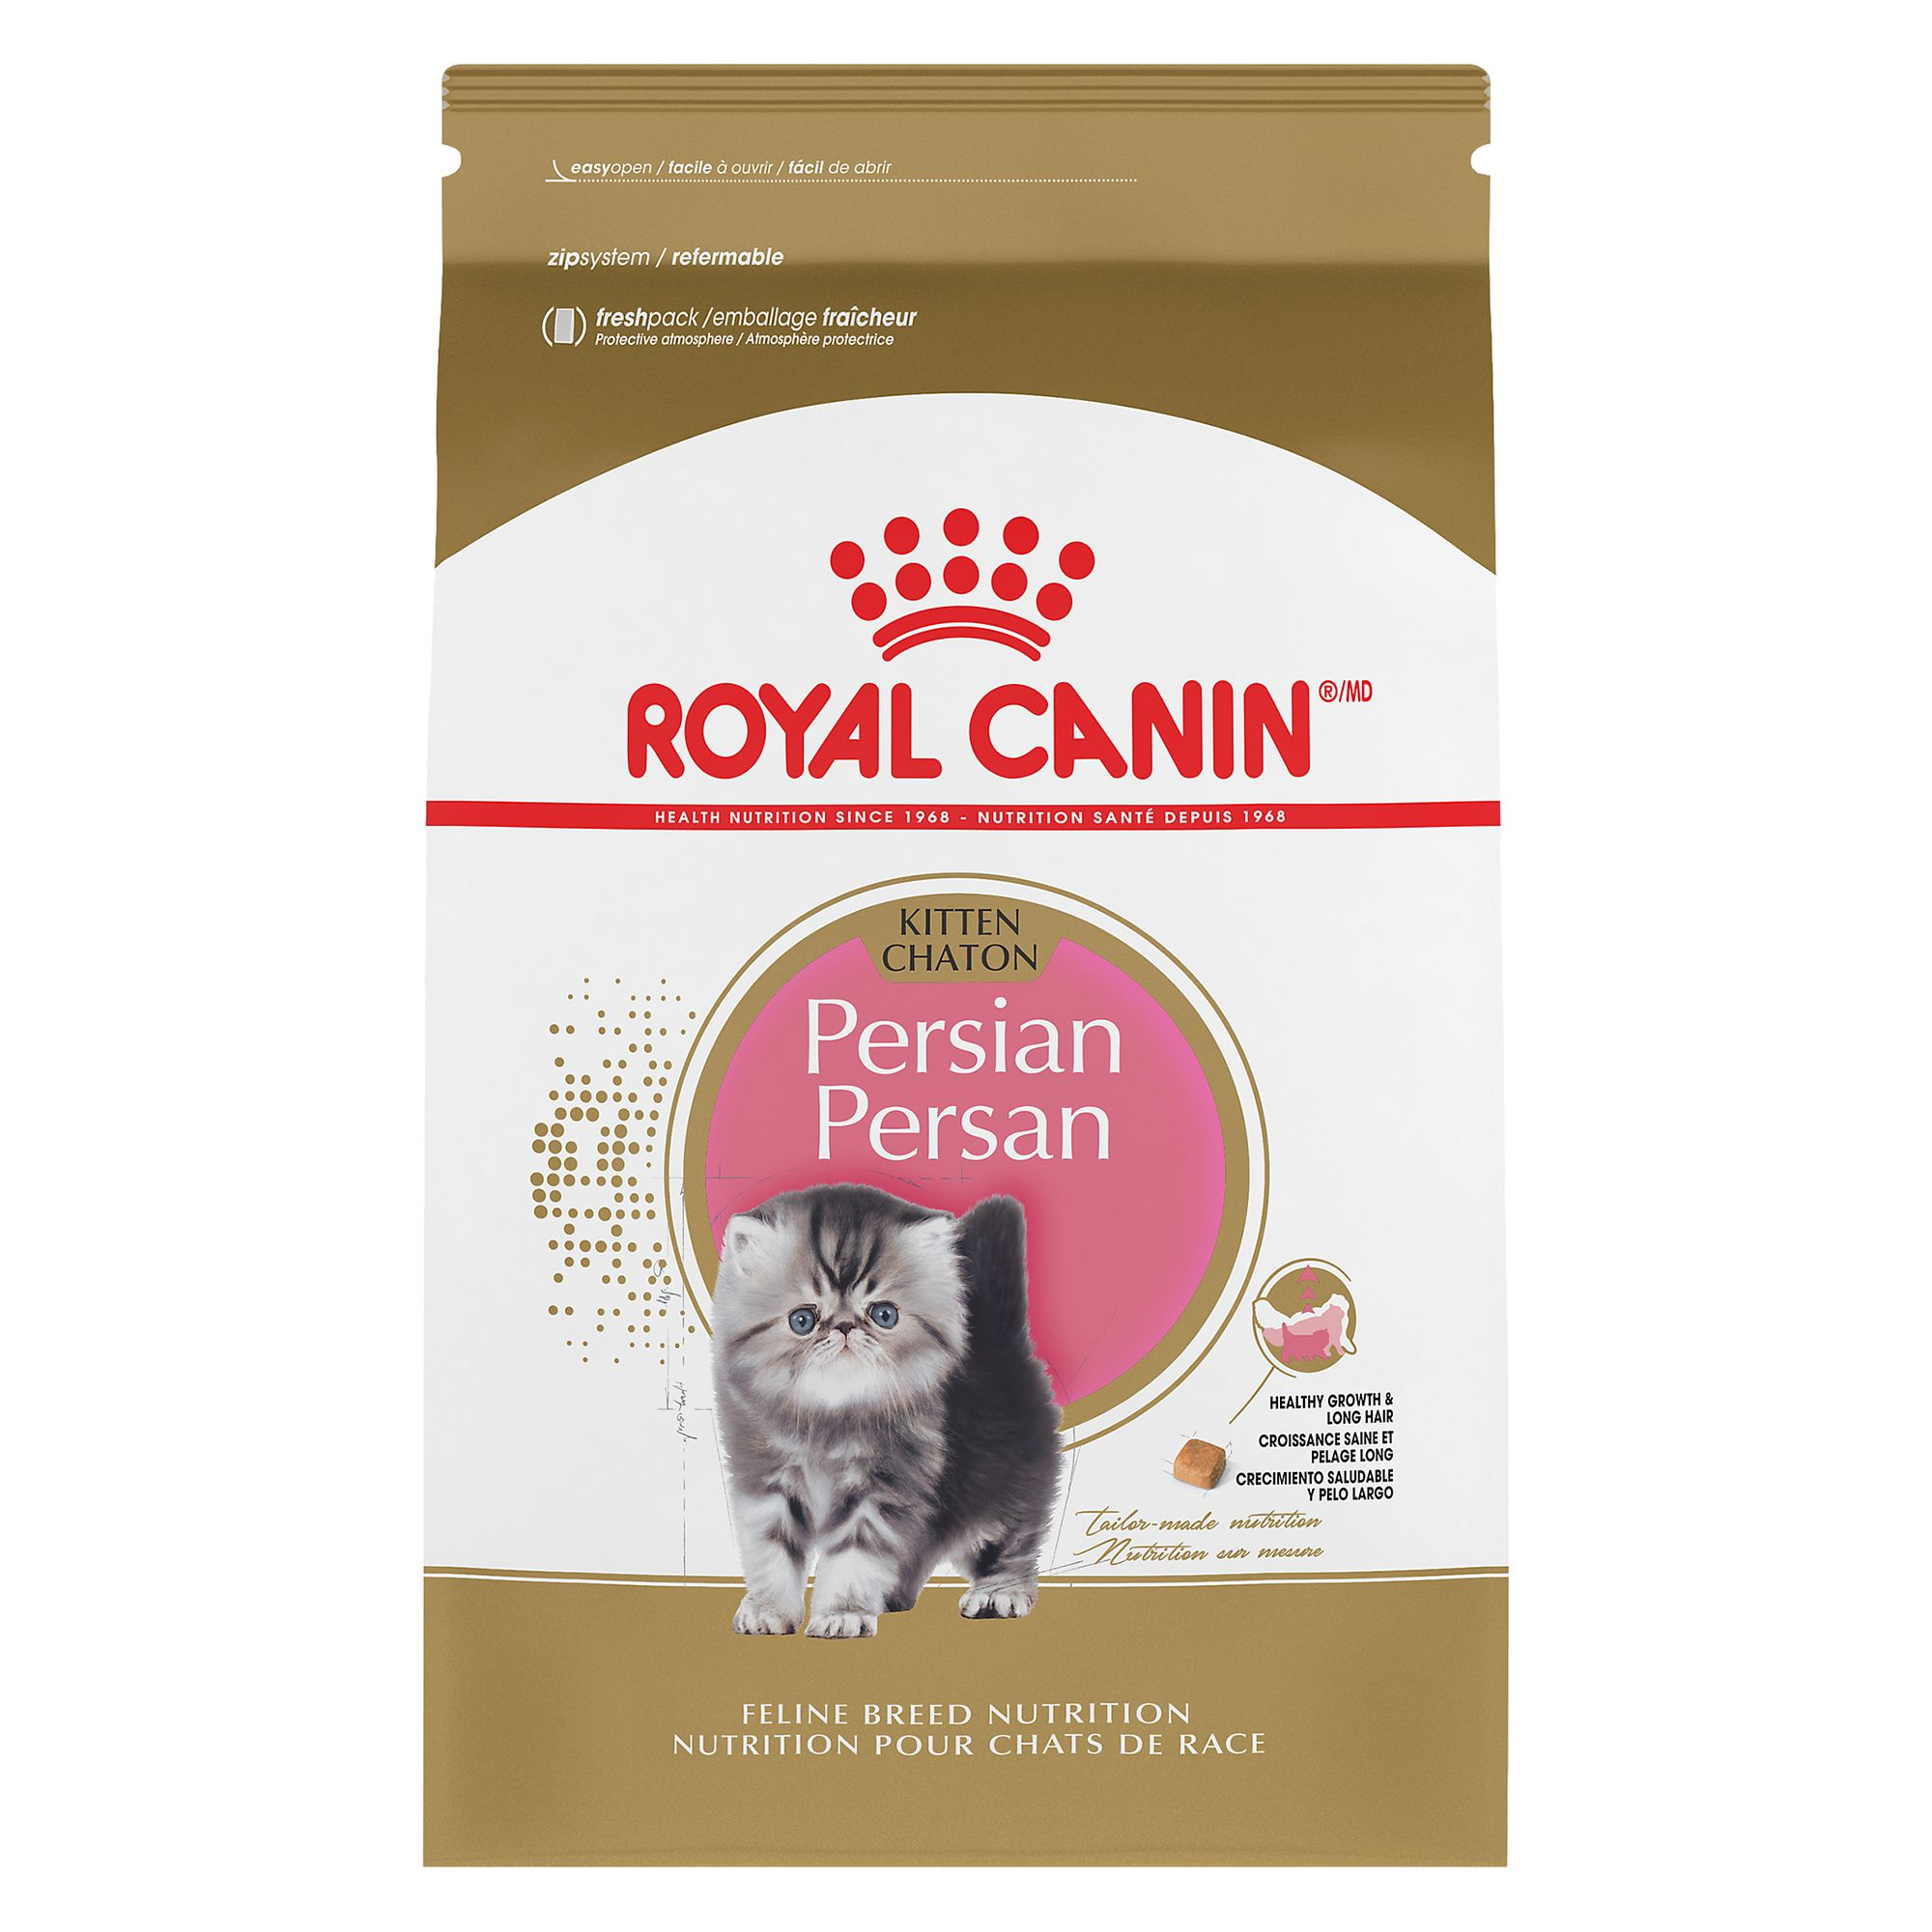 photograph regarding Royal Canin Printable Coupon titled Royal canin kitten bargains : Mitsubishi motor vehicle specials nz